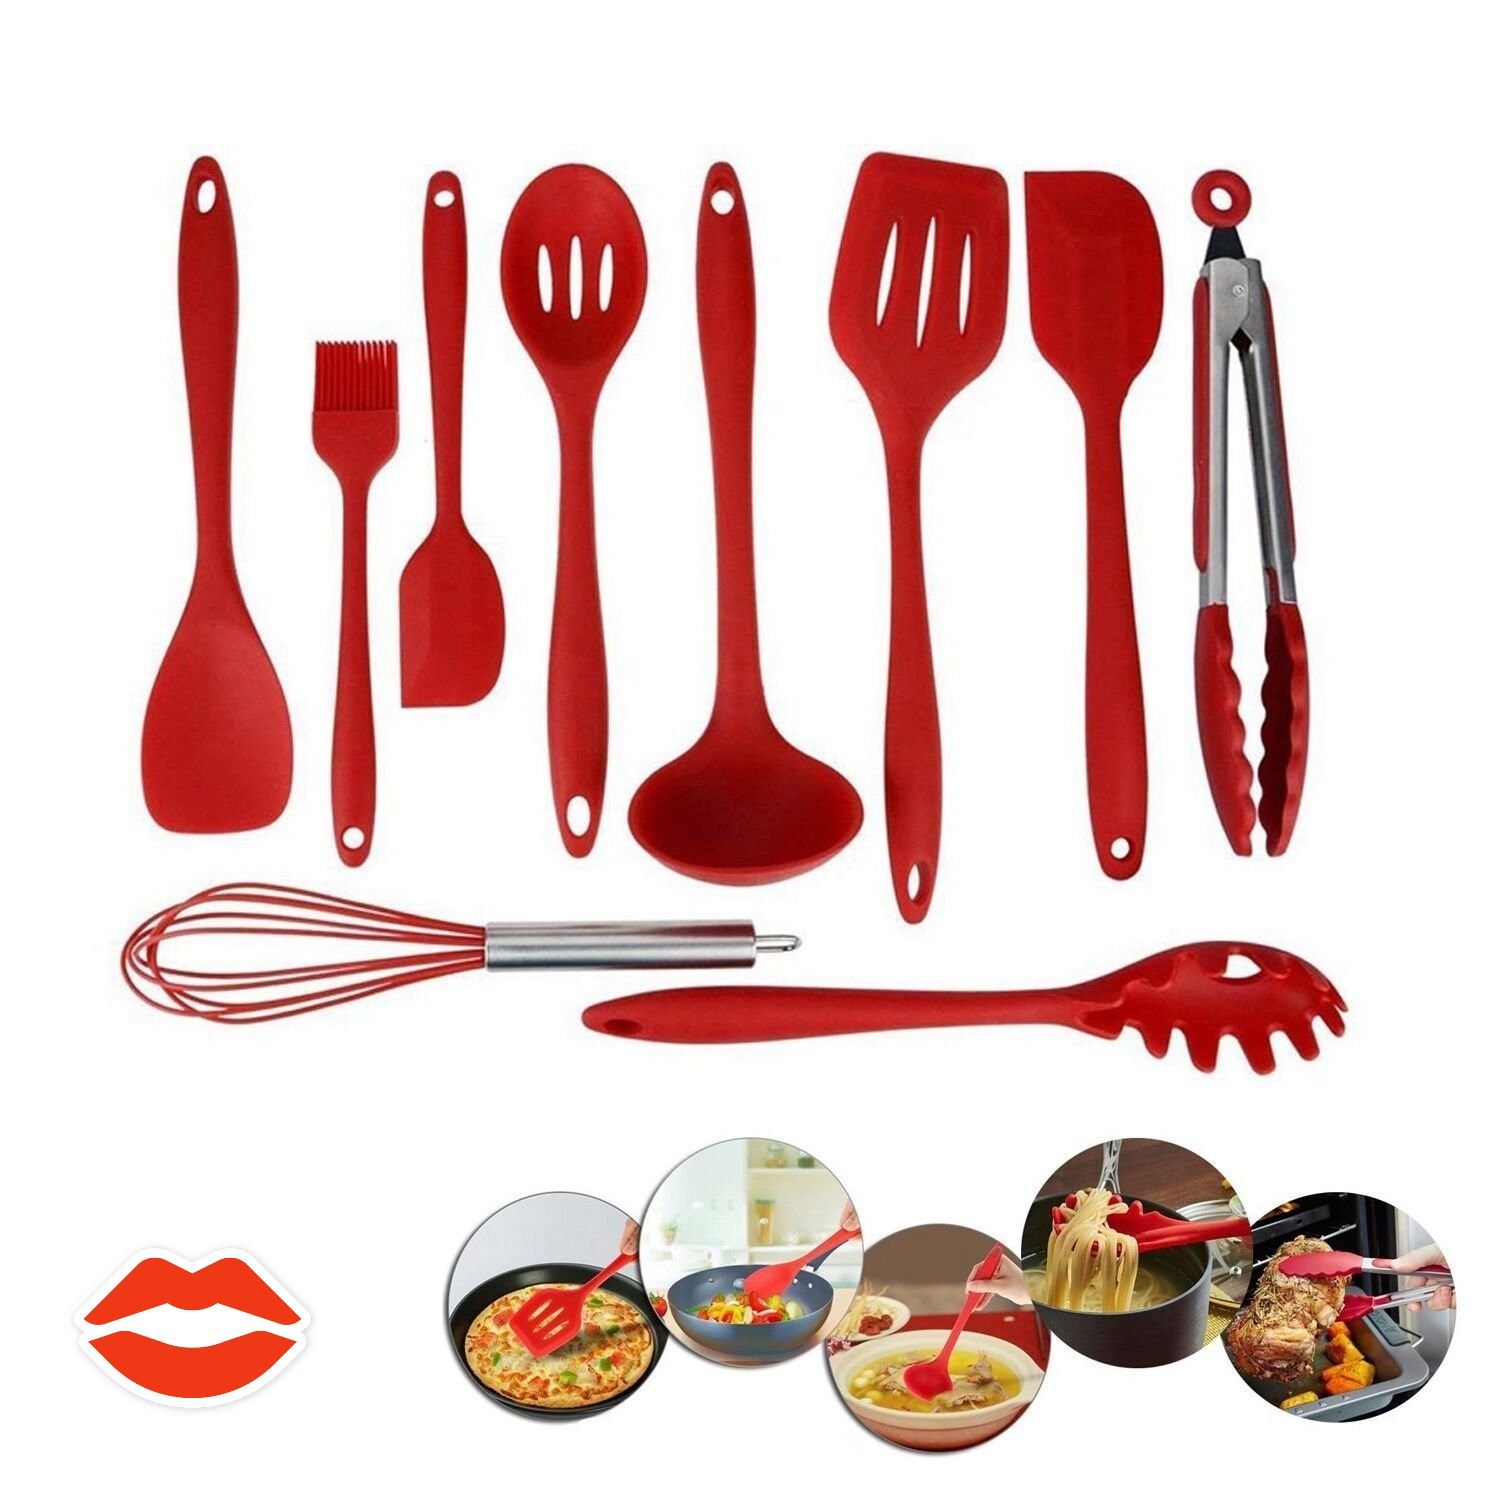 10 Piece/SET Home Kitchen Silicone Cooking Utensil Set Kitchen Cooking Tools Red